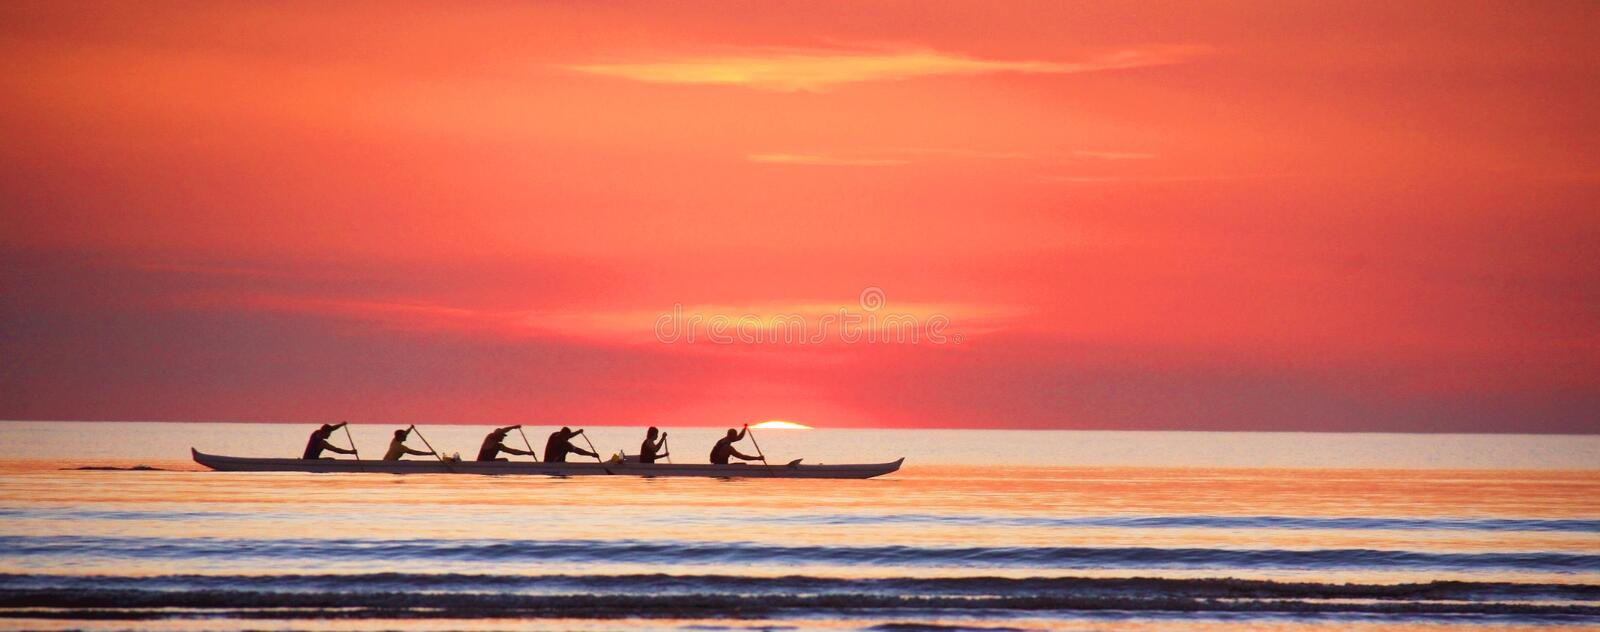 Rowing at sunset on the Indian Ocean, western Australia. Rowing during the sunset on Indian Ocean. Picture taken in Broome, Western Australia royalty free stock image